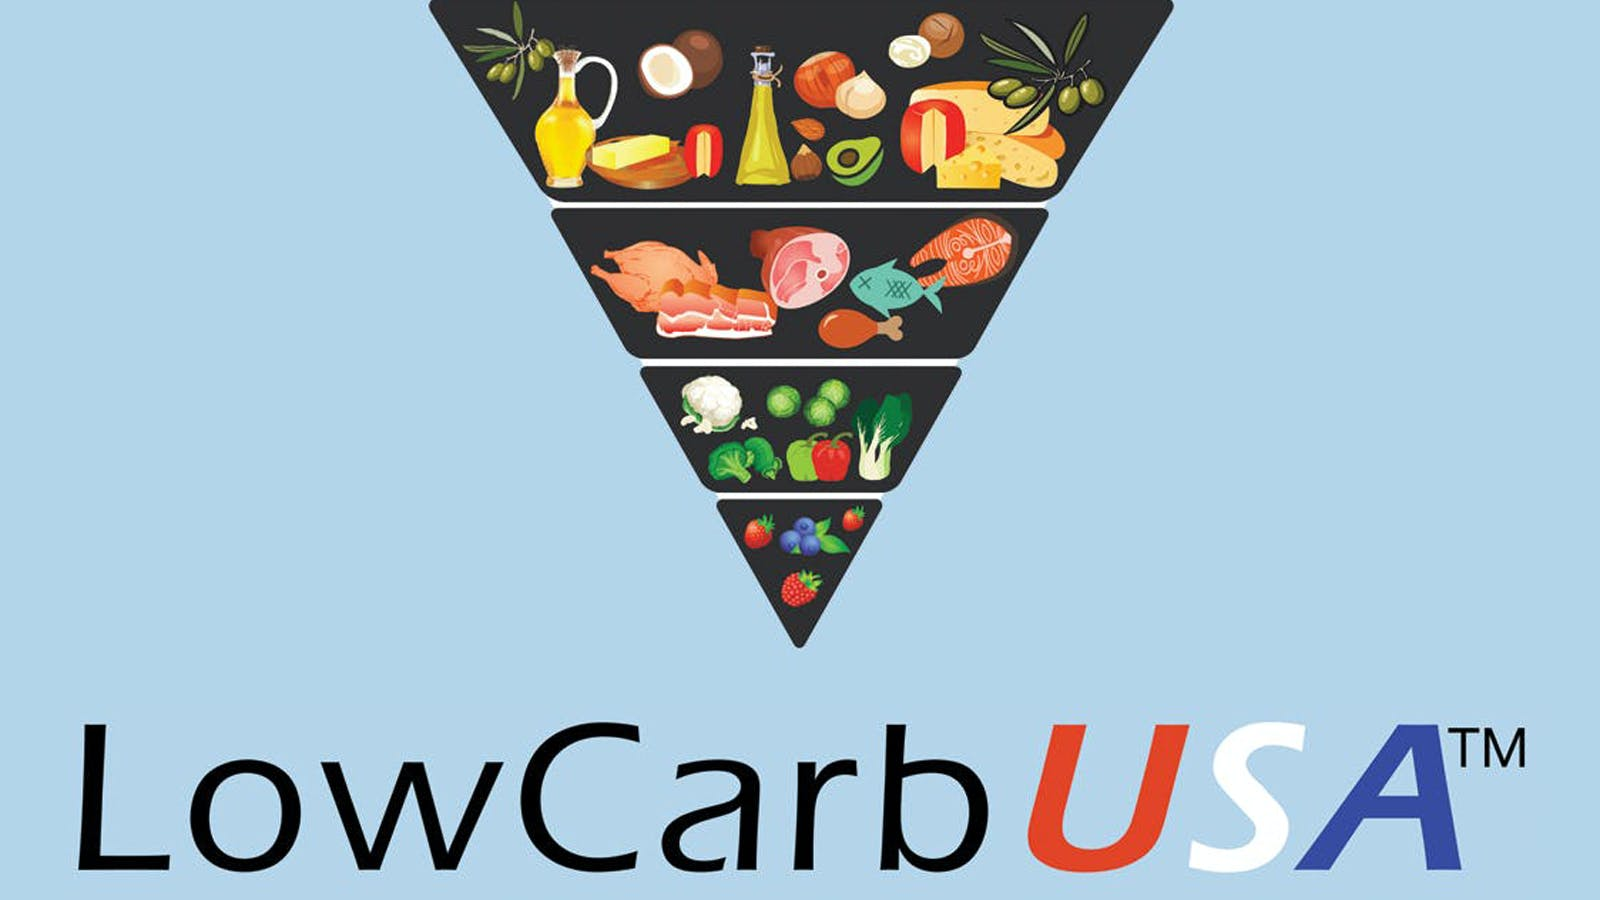 Early bird special on the Low Carb USA in San Diego 25-28 July 2019!